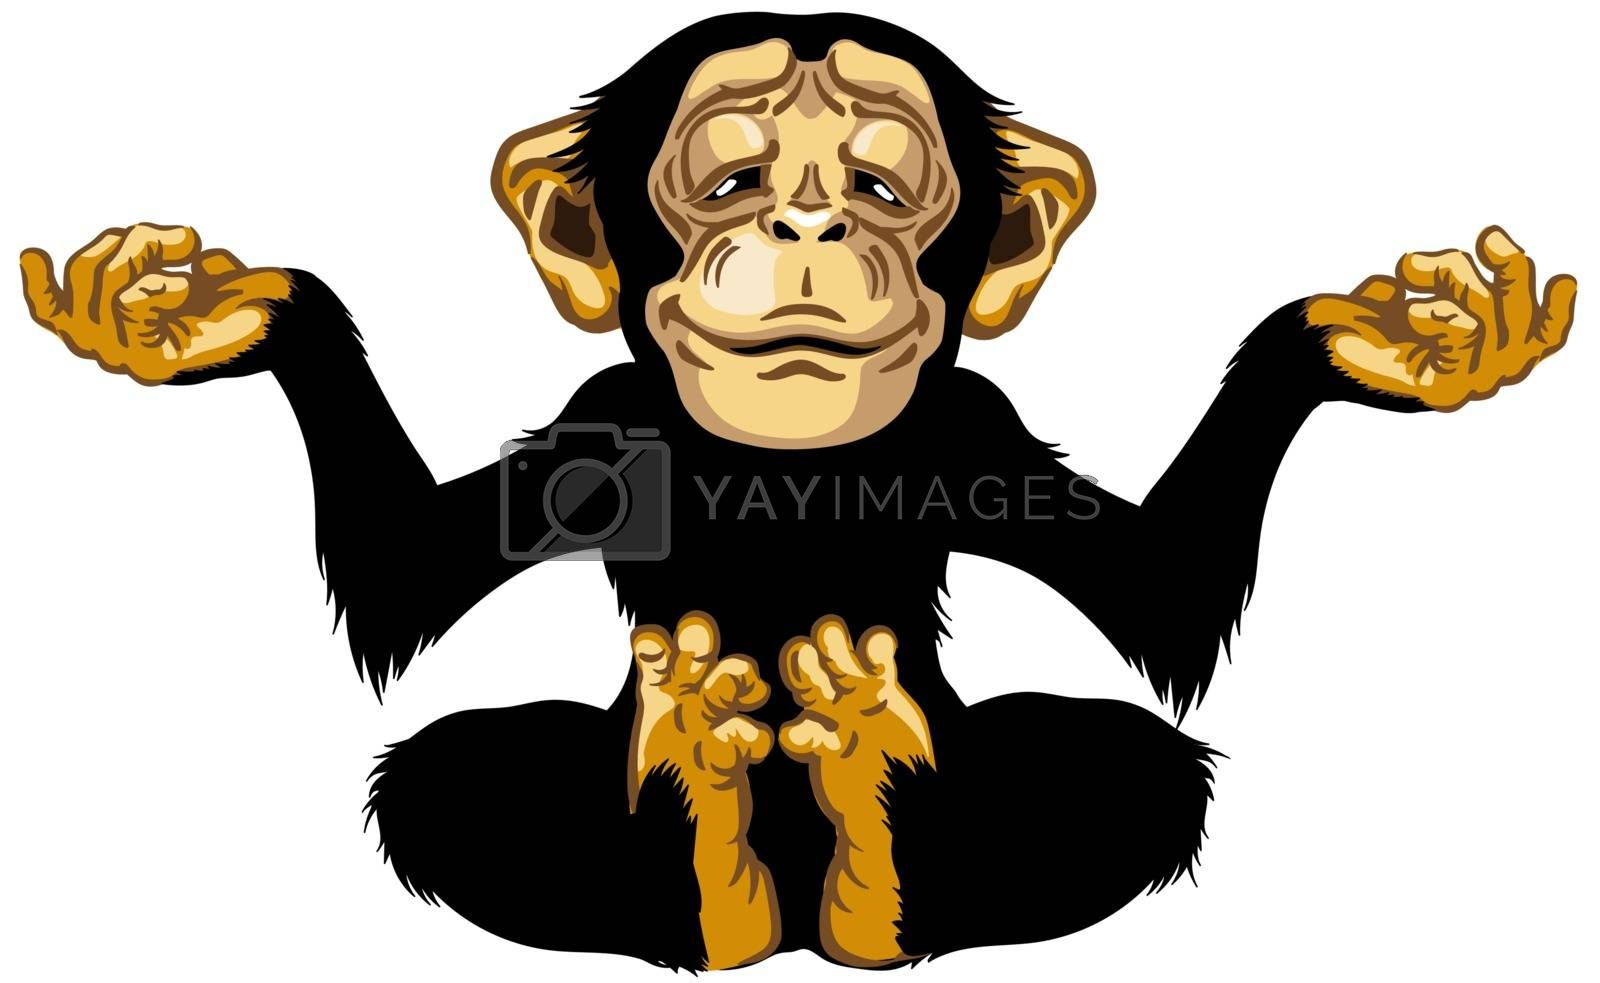 cartoon chimp great ape or chimpanzee monkey sitting in lotus yoga position and meditating. Calm and peaceful emotion. Front view. Isolated vector illustration